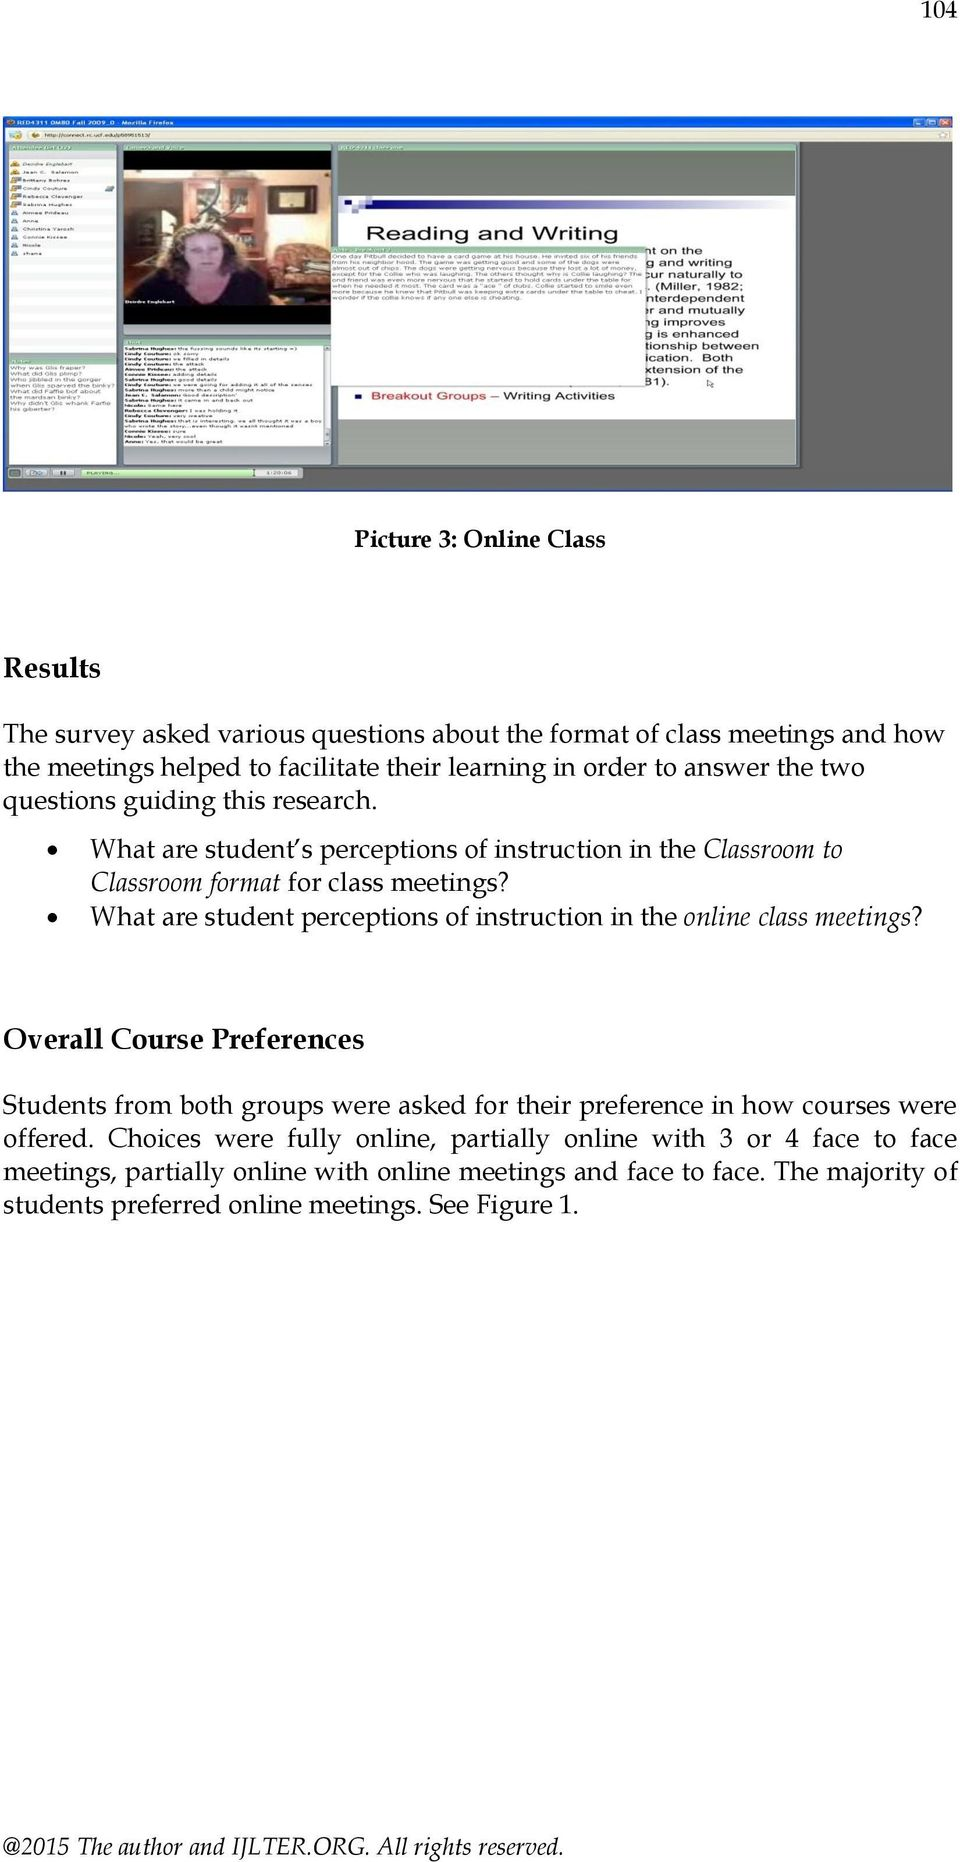 What are student perceptions of instruction in the online class meetings?